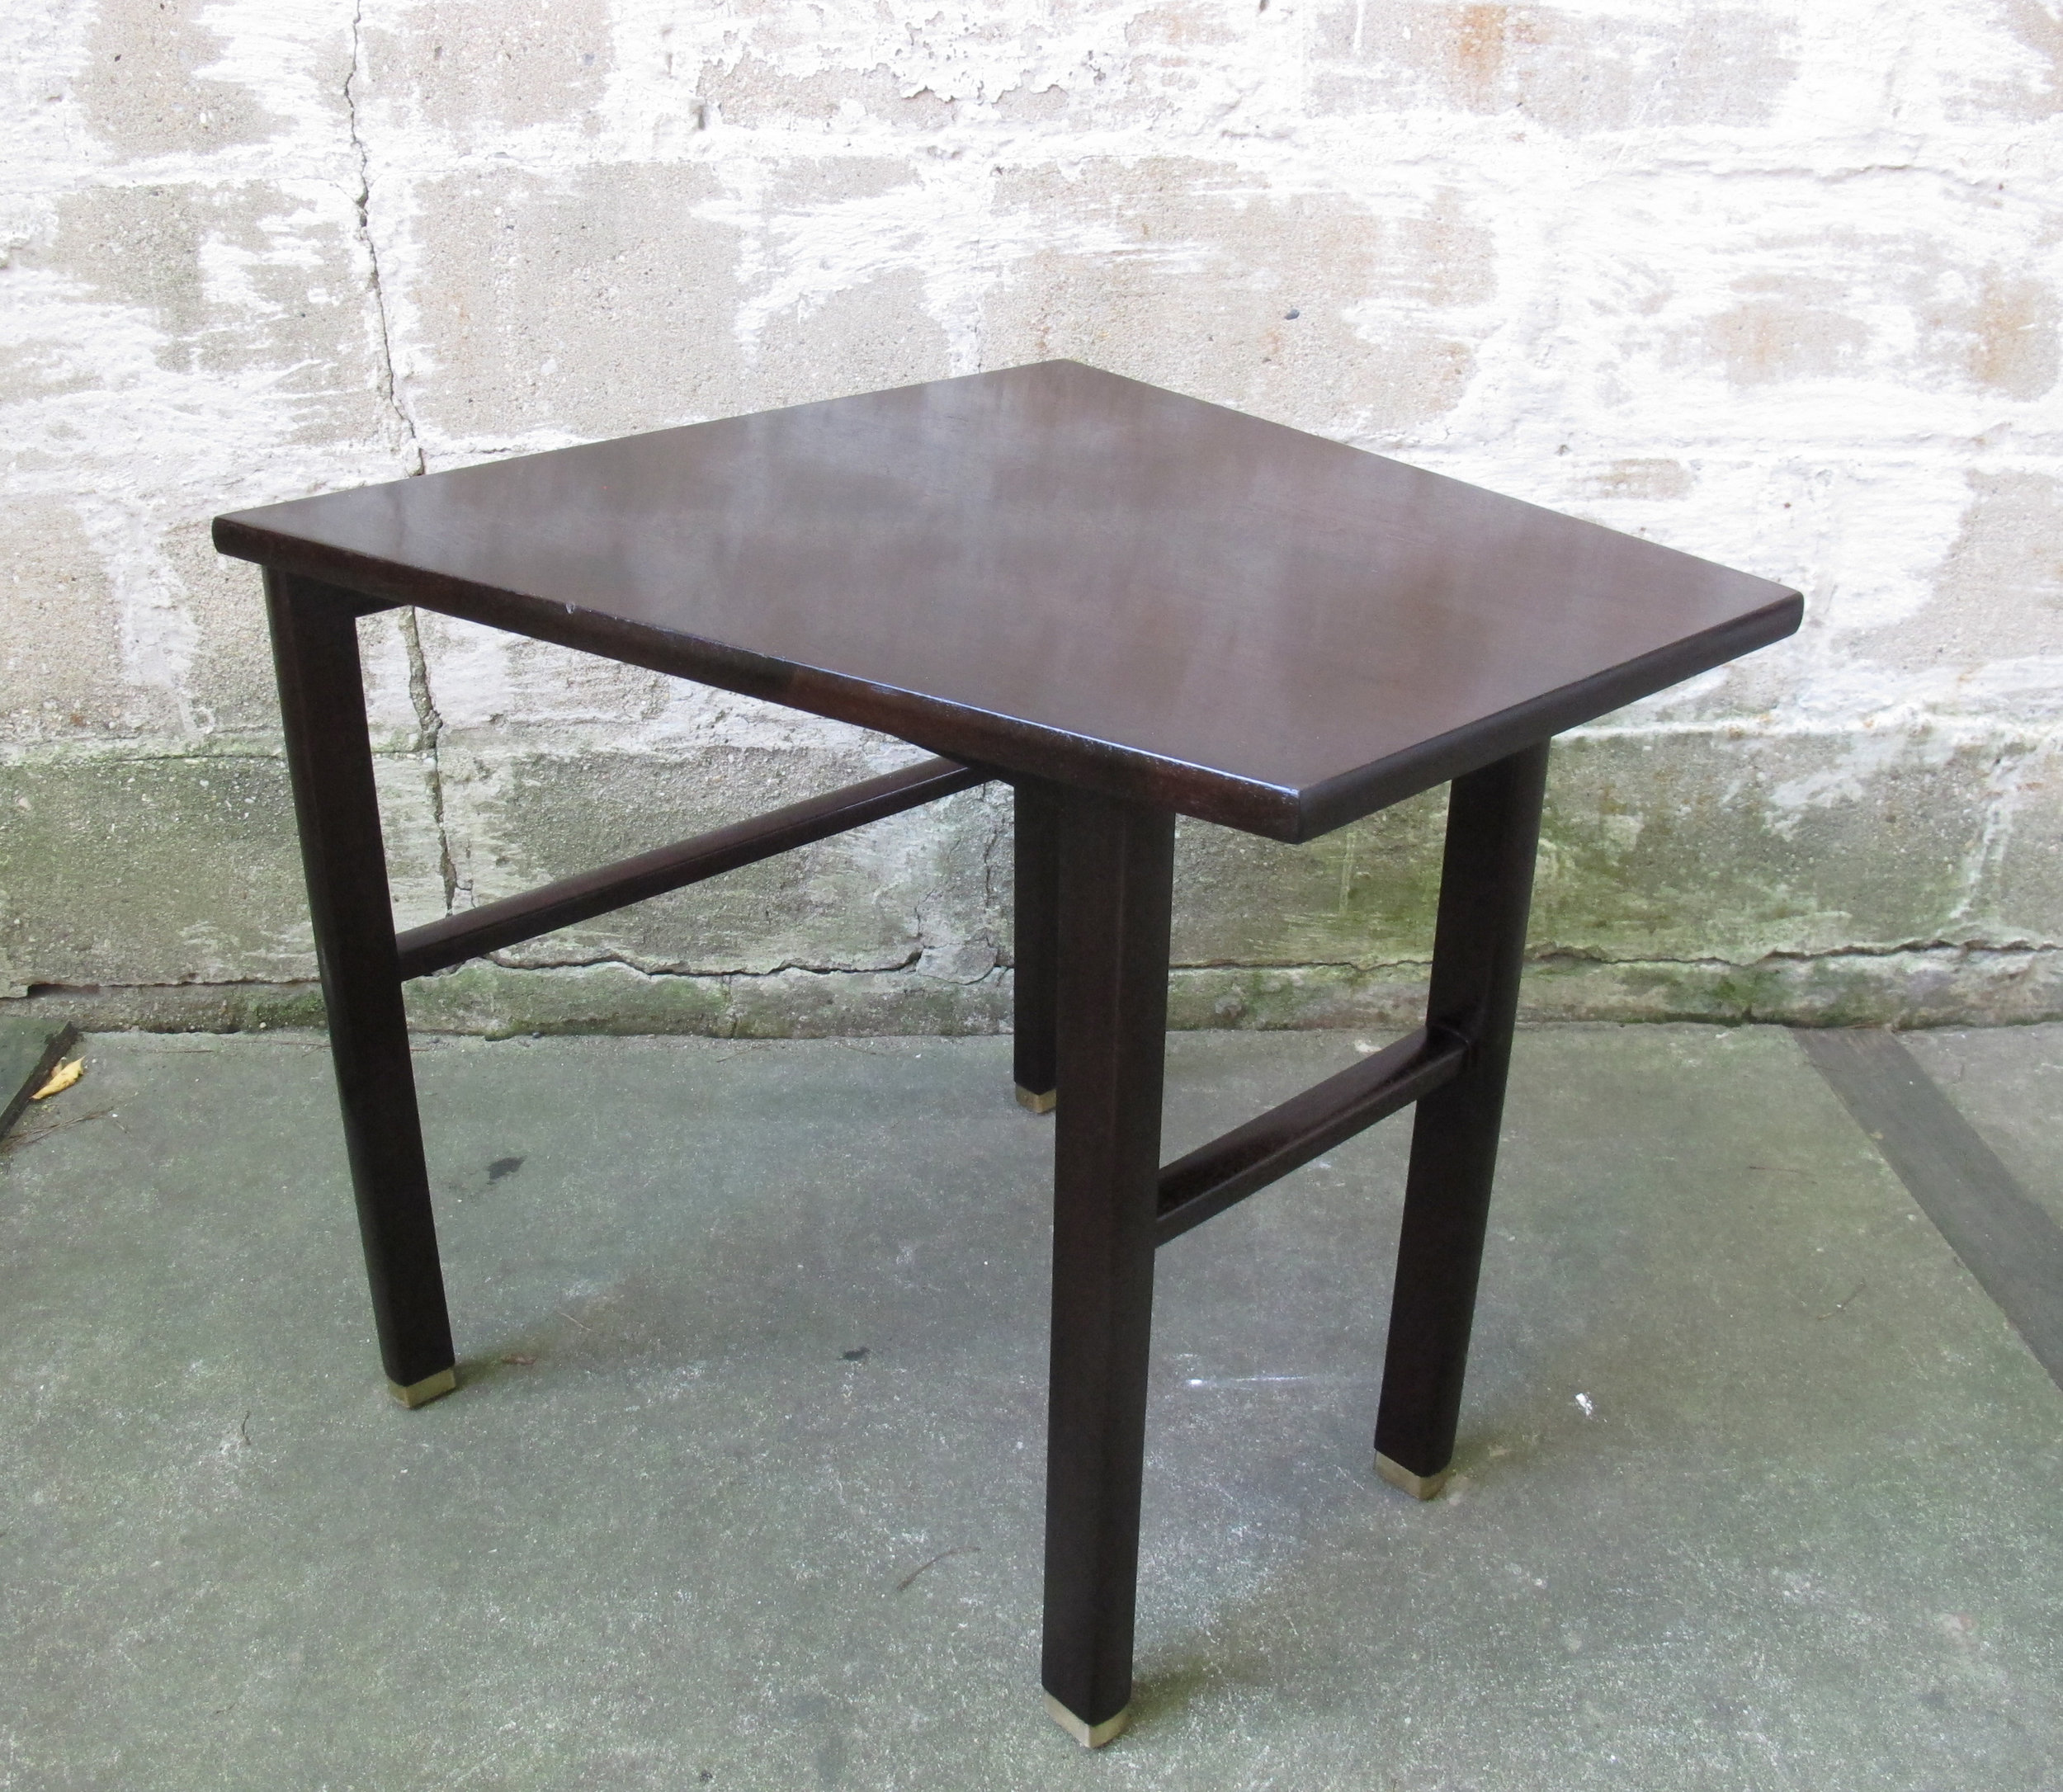 MID CENTURY EDWARD WORMLEY TRAPEZOID SIDE TABLE BY DUNBAR